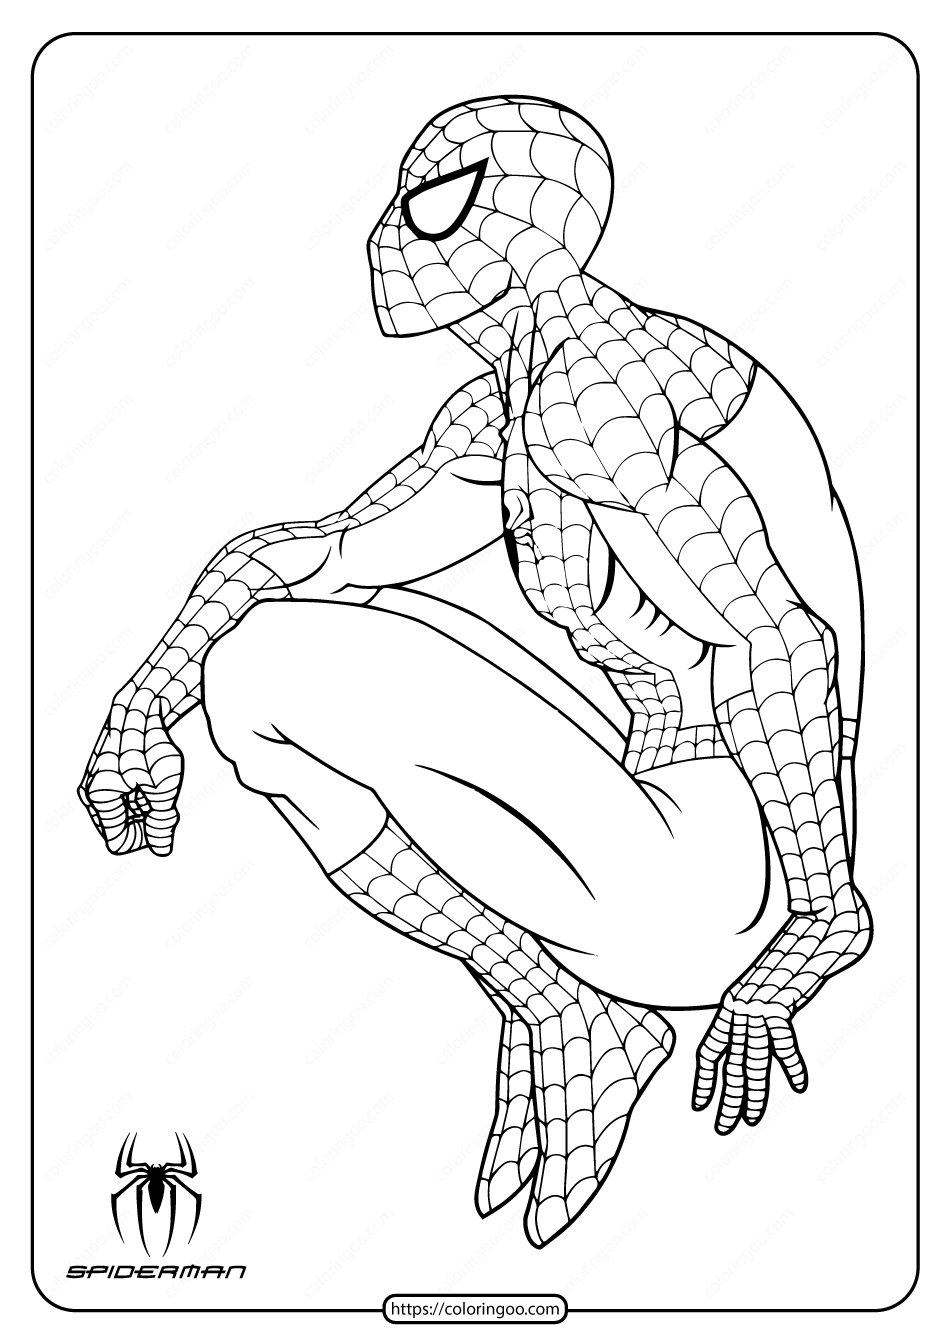 Marvel Hero Spiderman Pdf Coloring Page Spiderman Coloring Superhero Coloring Pages Avengers Coloring Pages